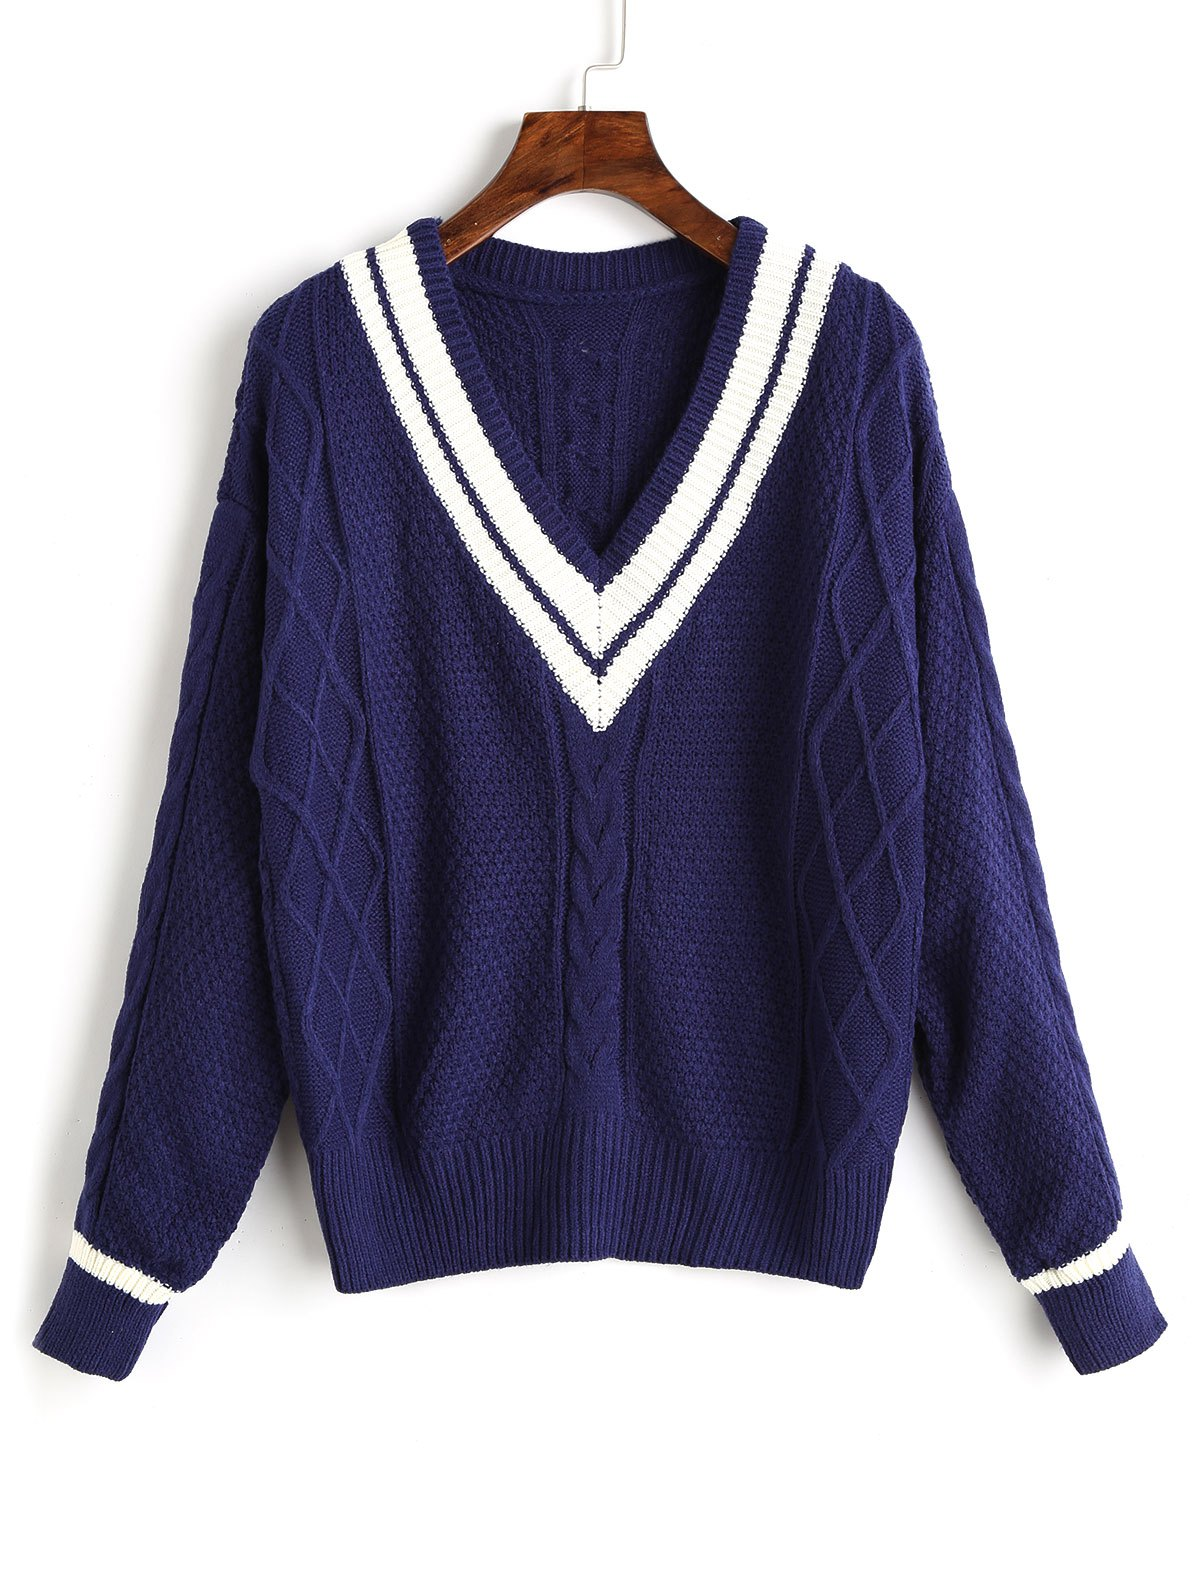 Contrast V Neck Cable Knit Sweater